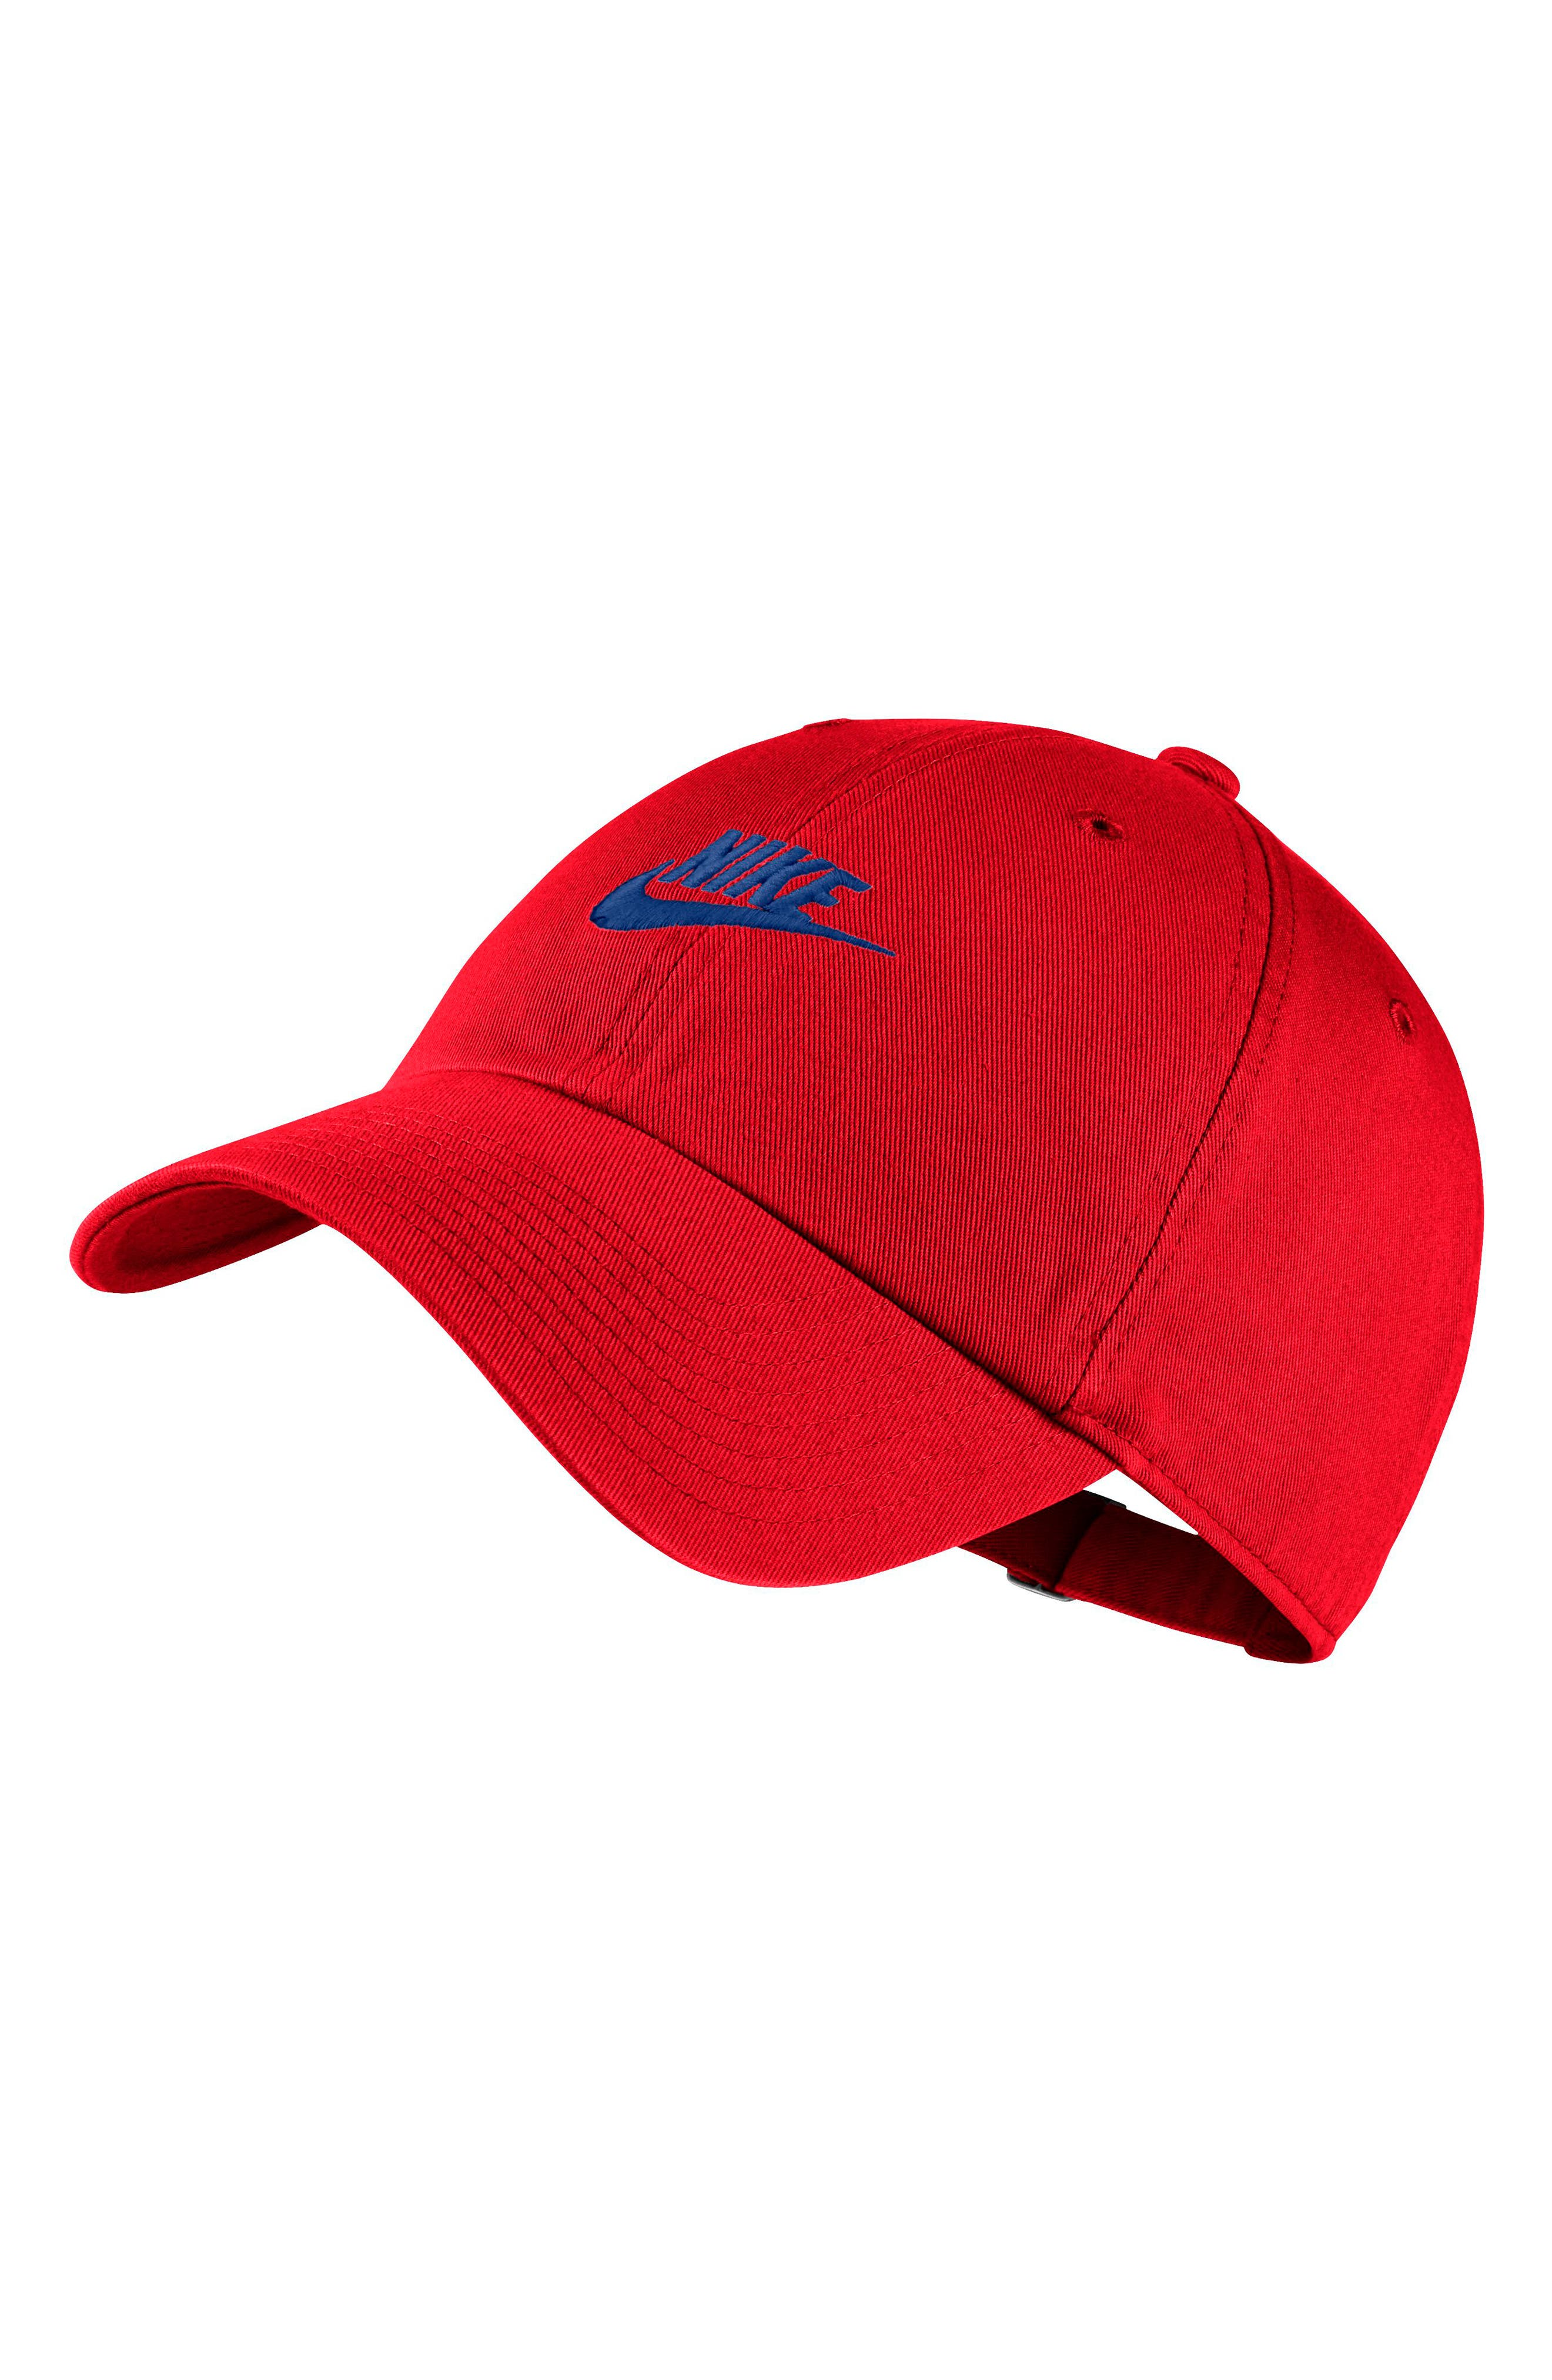 12be3c3d738 nike hat